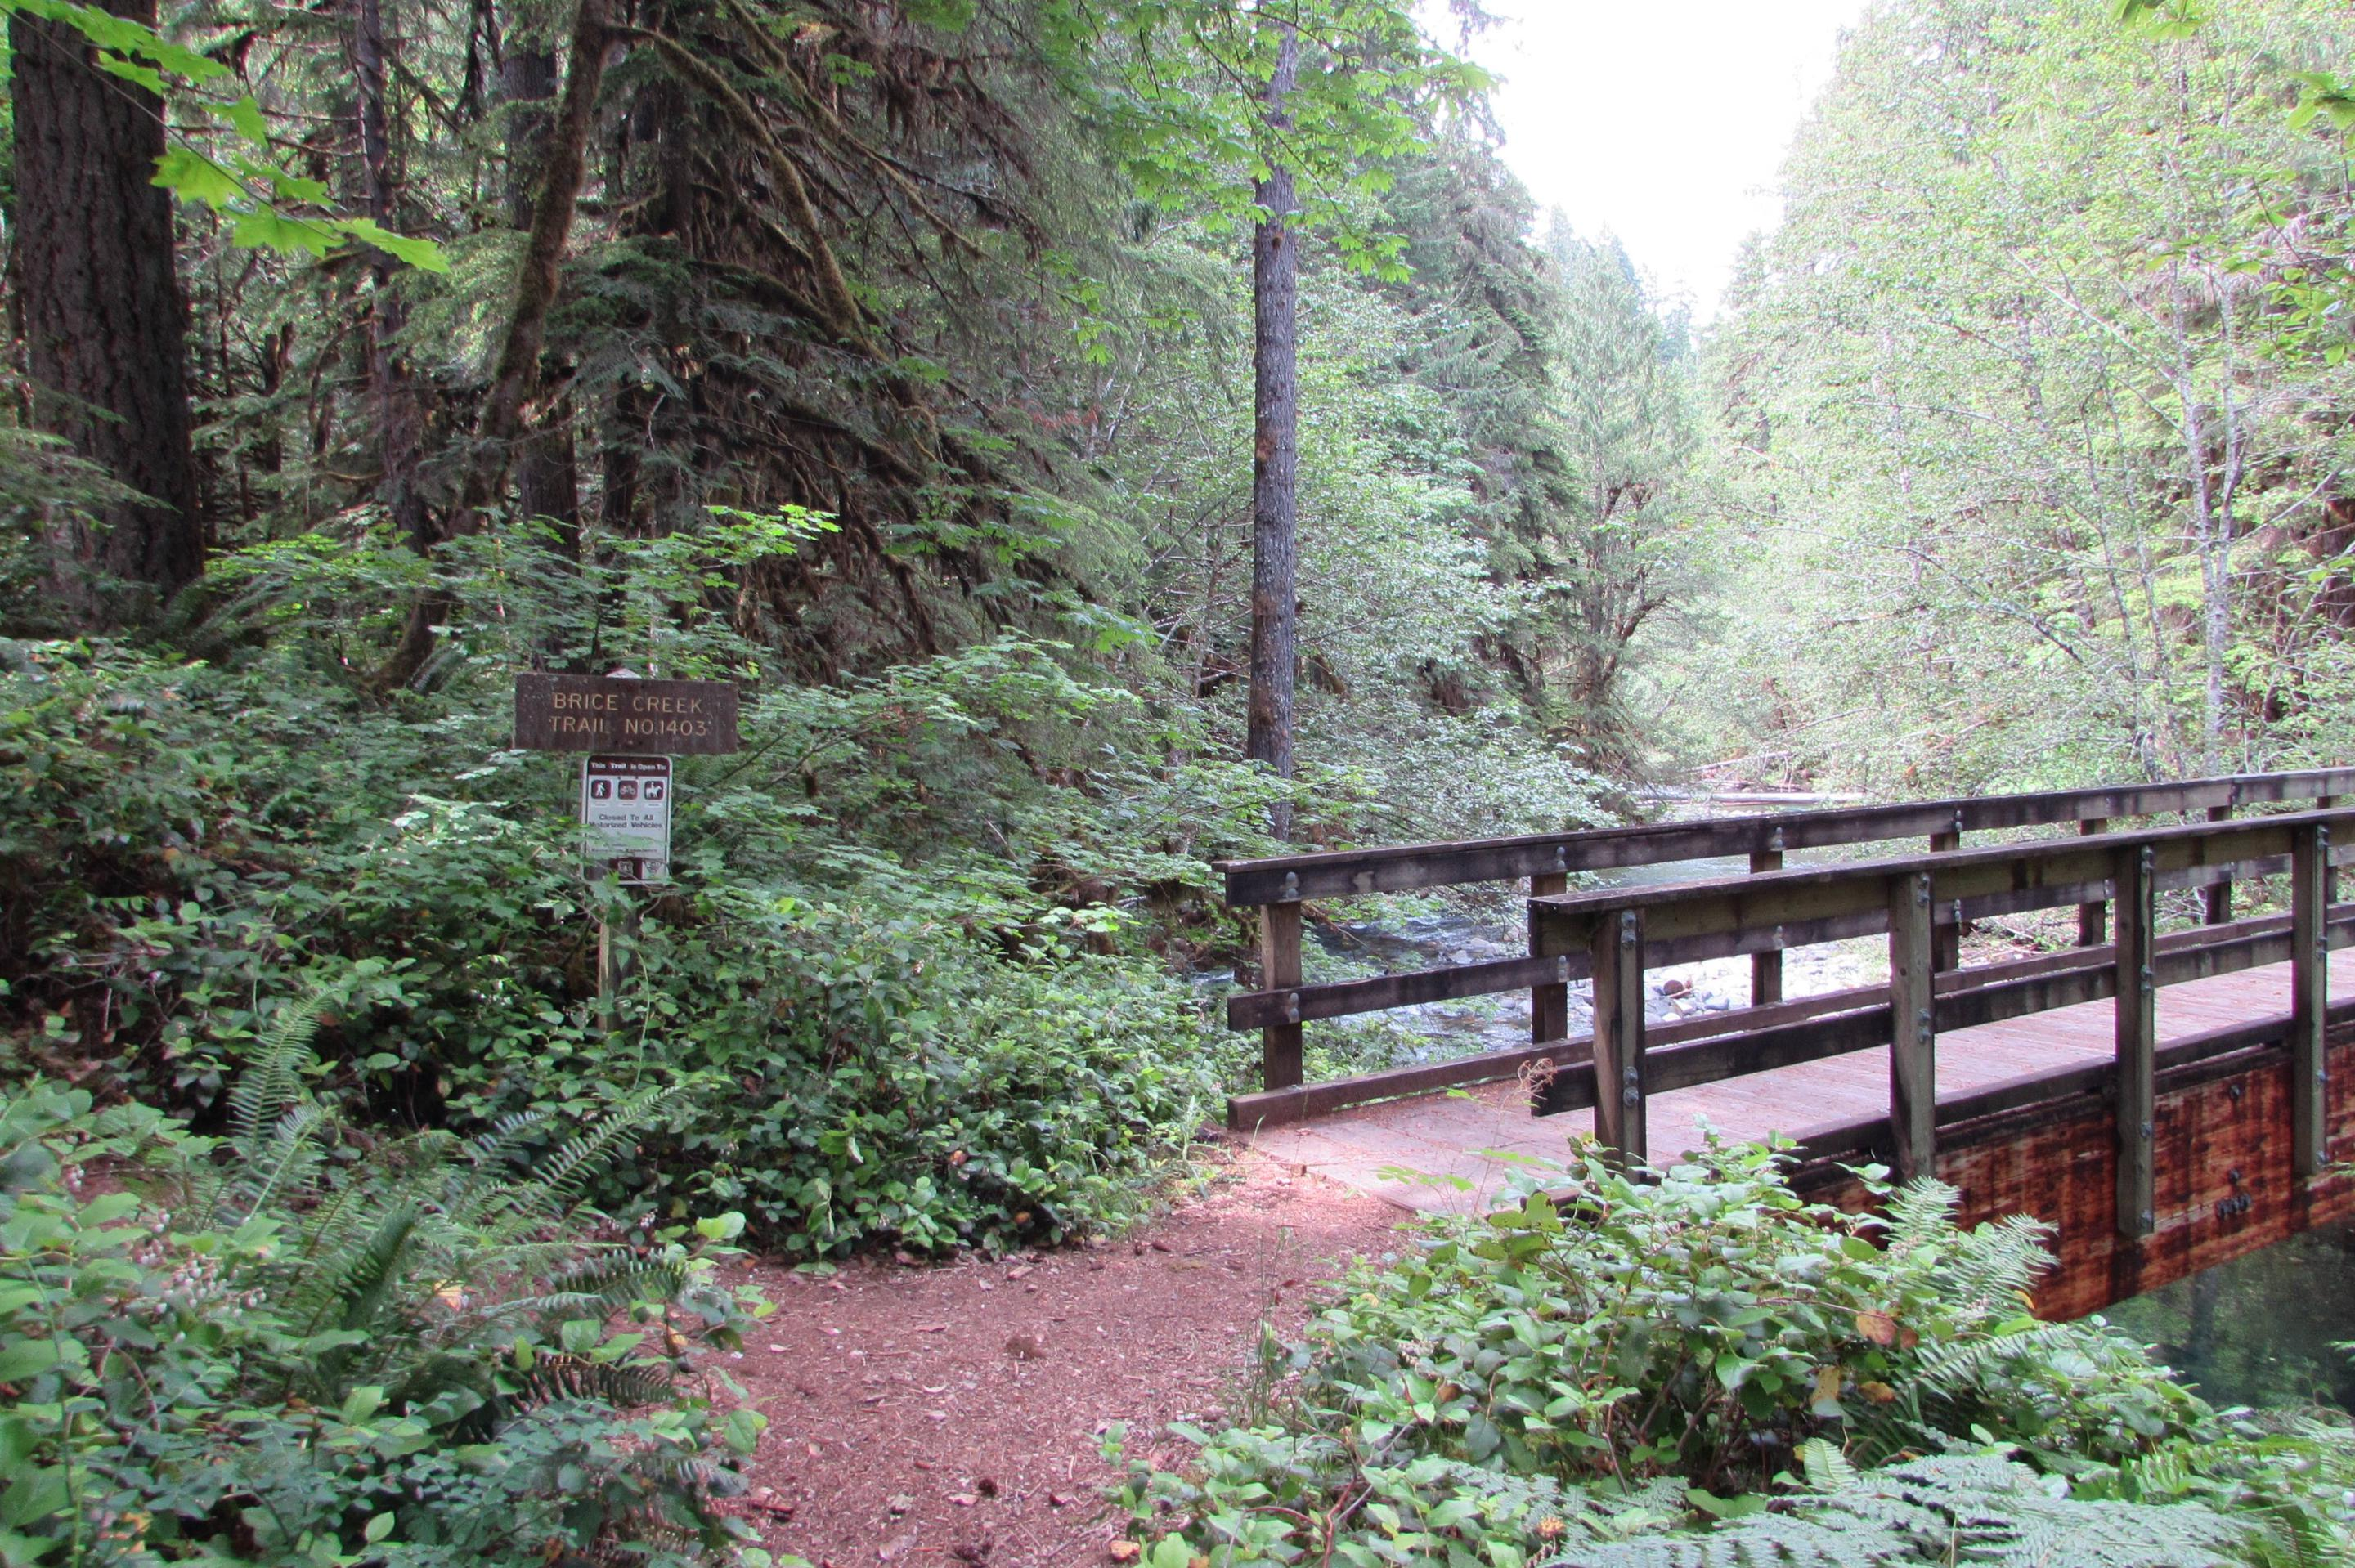 Brice Creek Trail BridgeBrice Creek and its scenic trail run along the whole campground